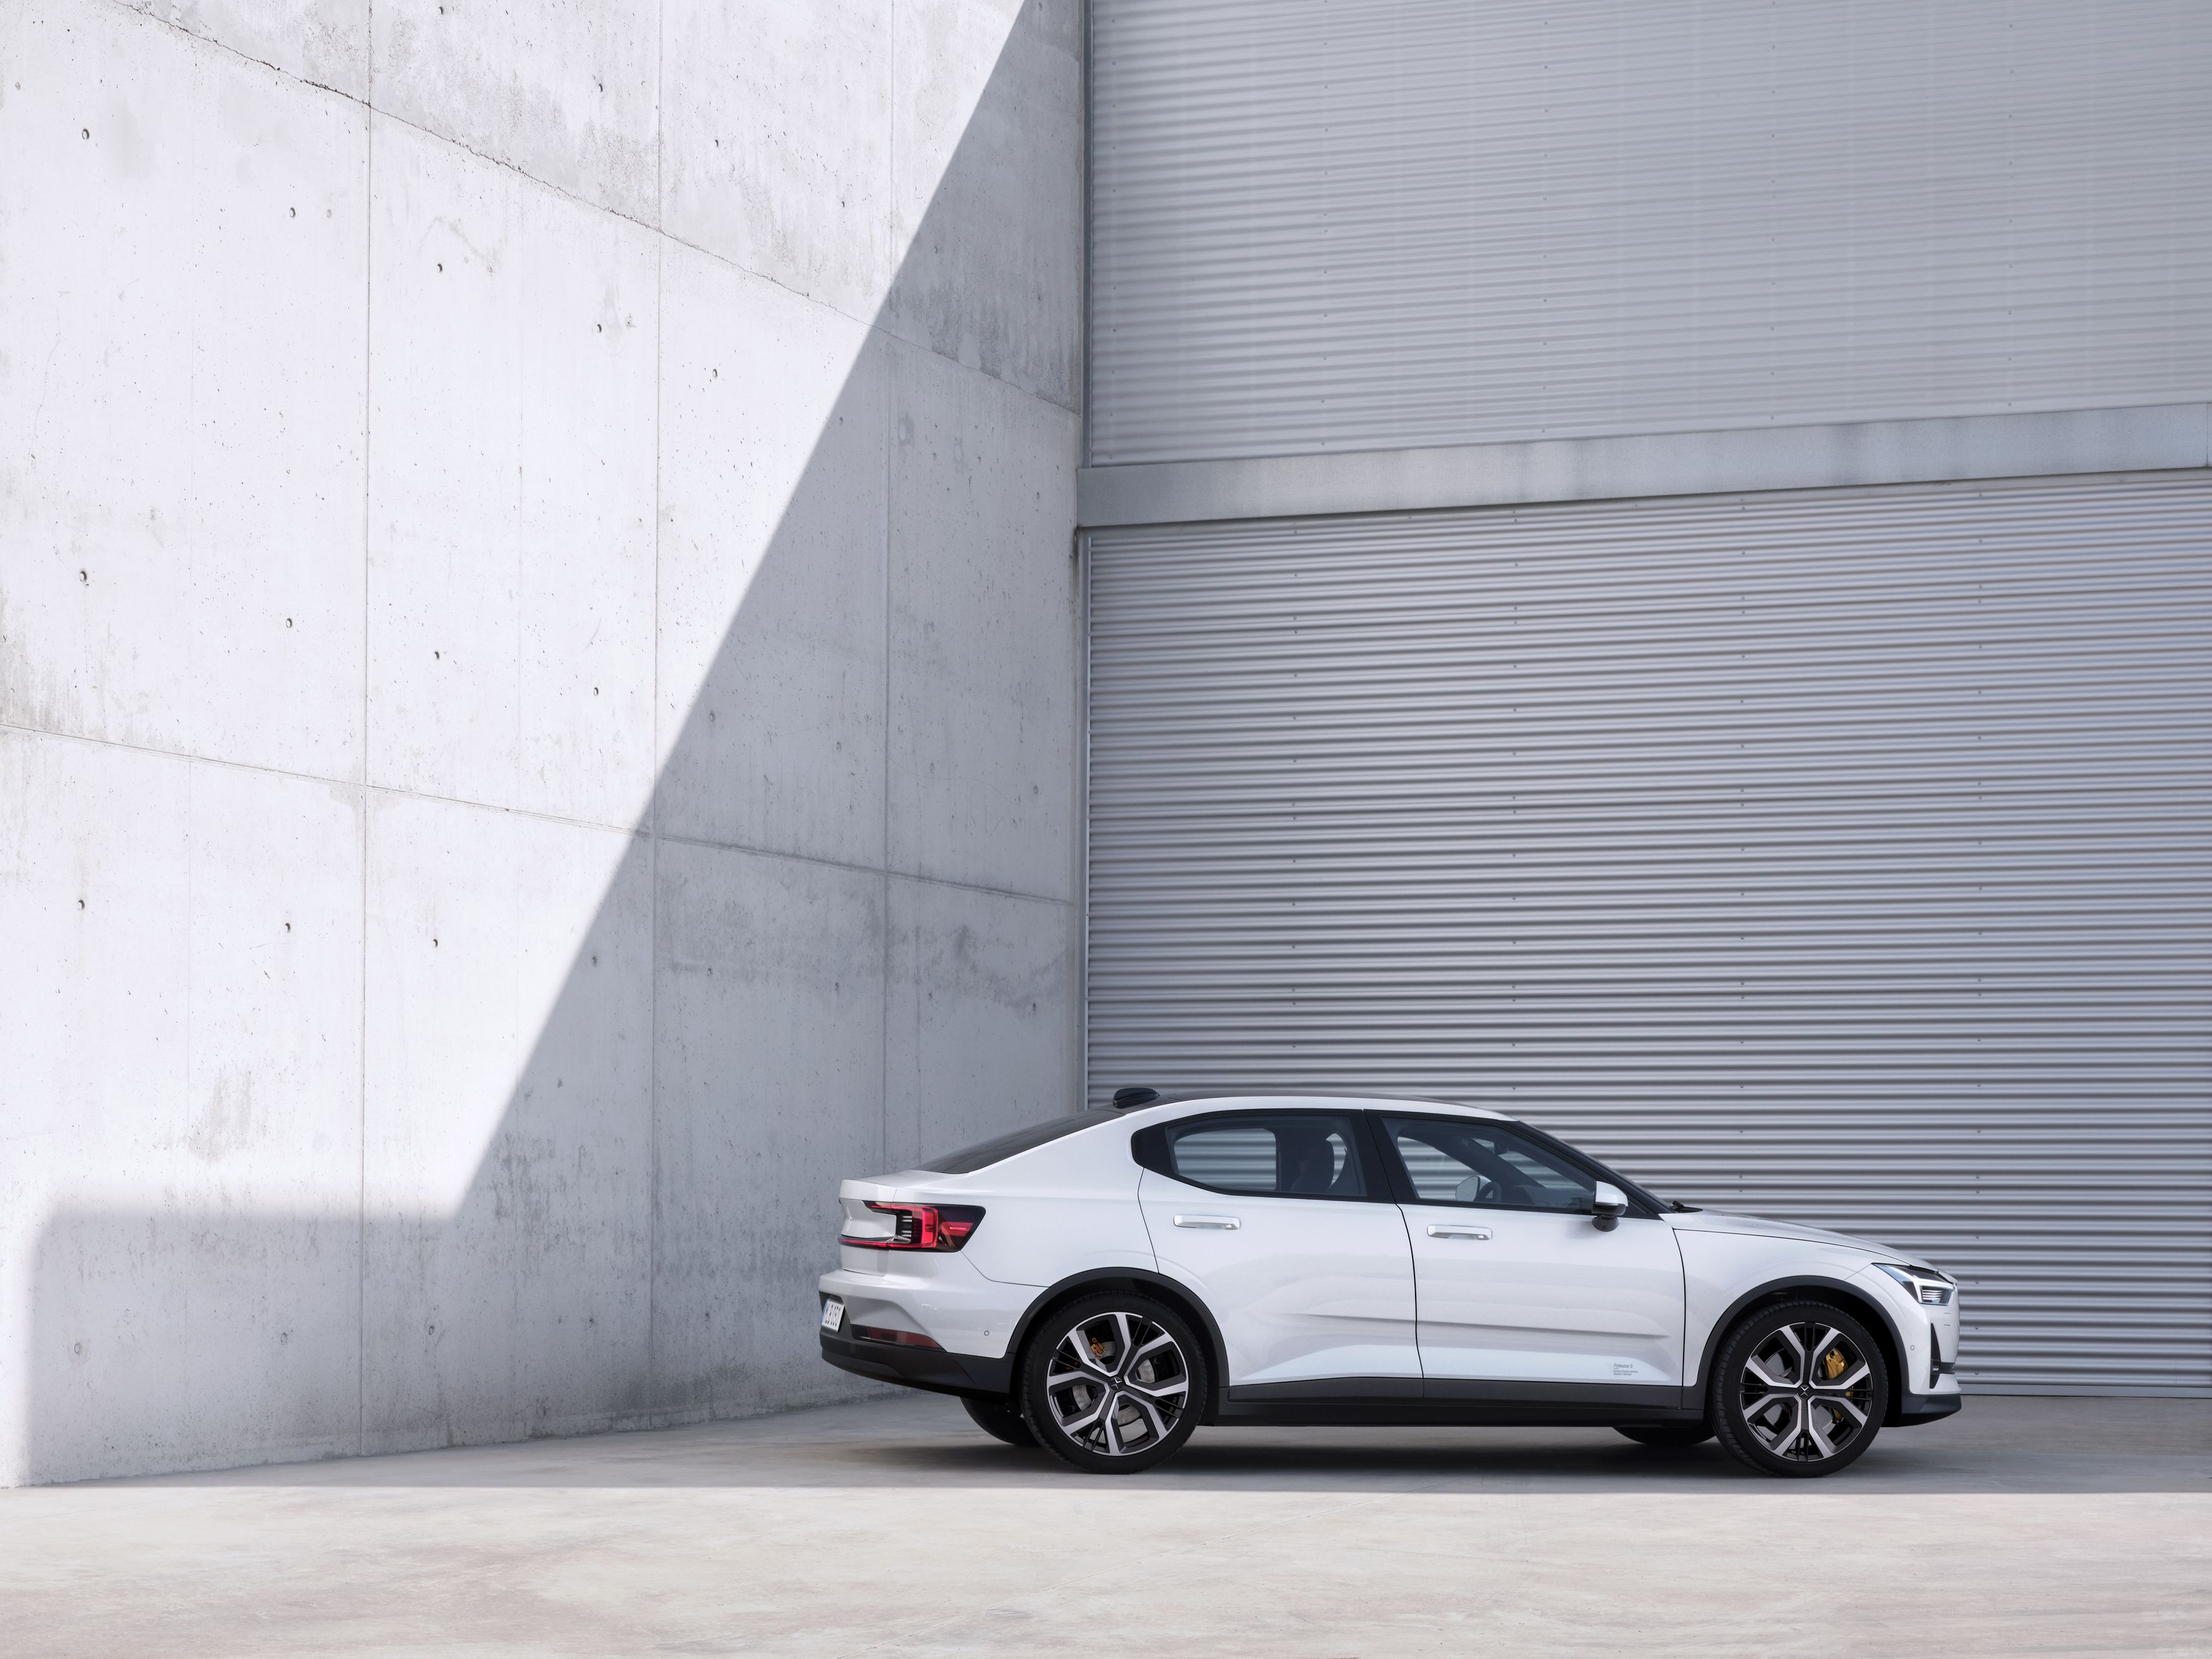 The 2020 Polestar 2 Is A 408 Hp Electric Sedan Made To Fight Tesla Model 3